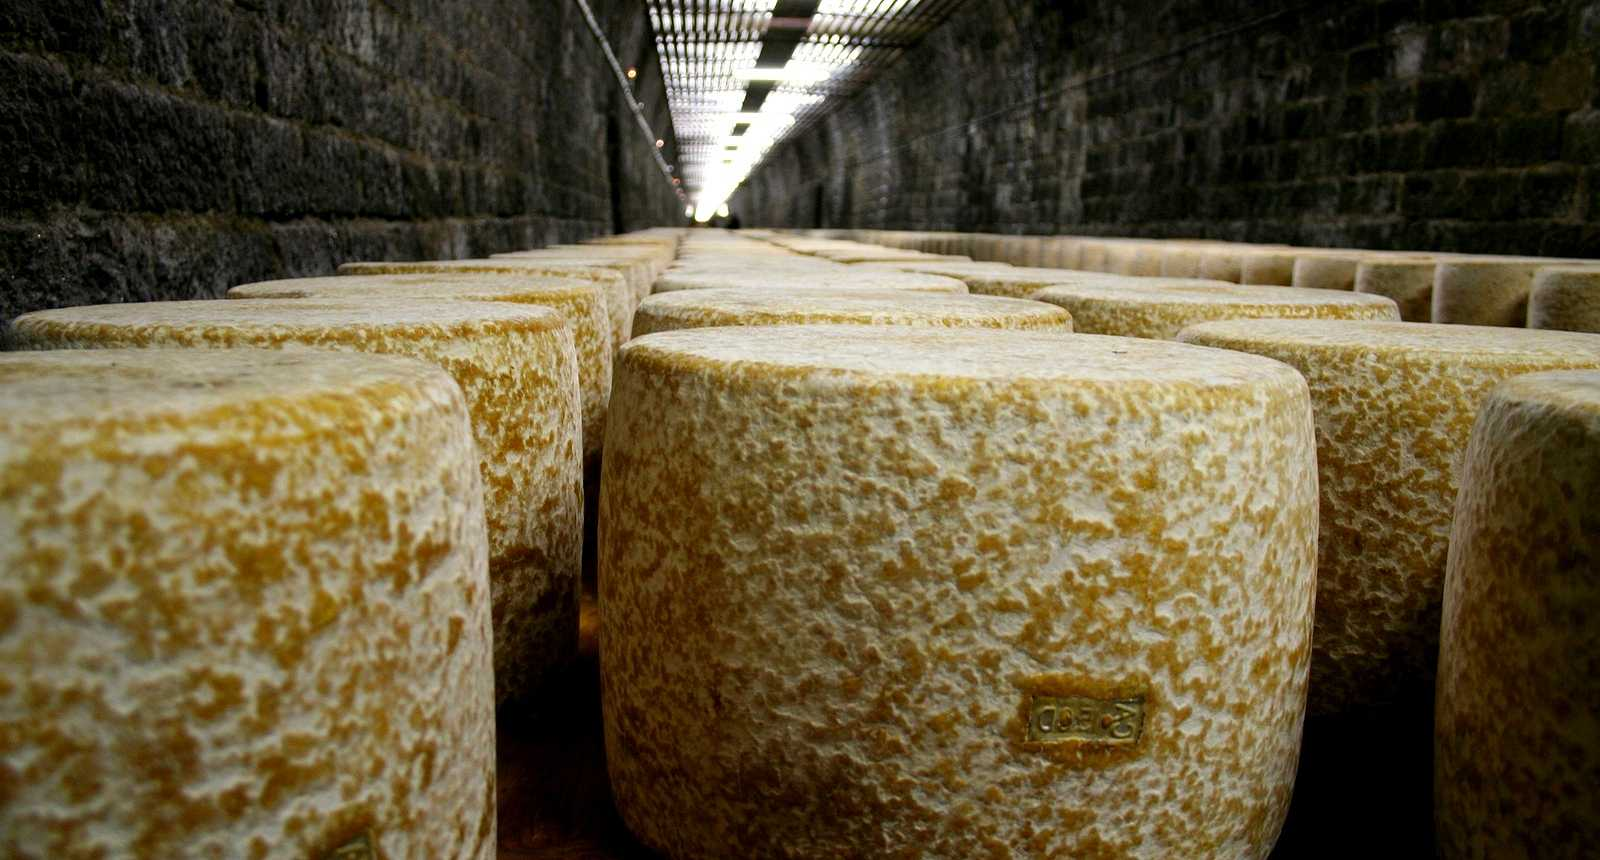 Photo affinage du fromage cantal en tunnel 326 for Affinage fromage maison